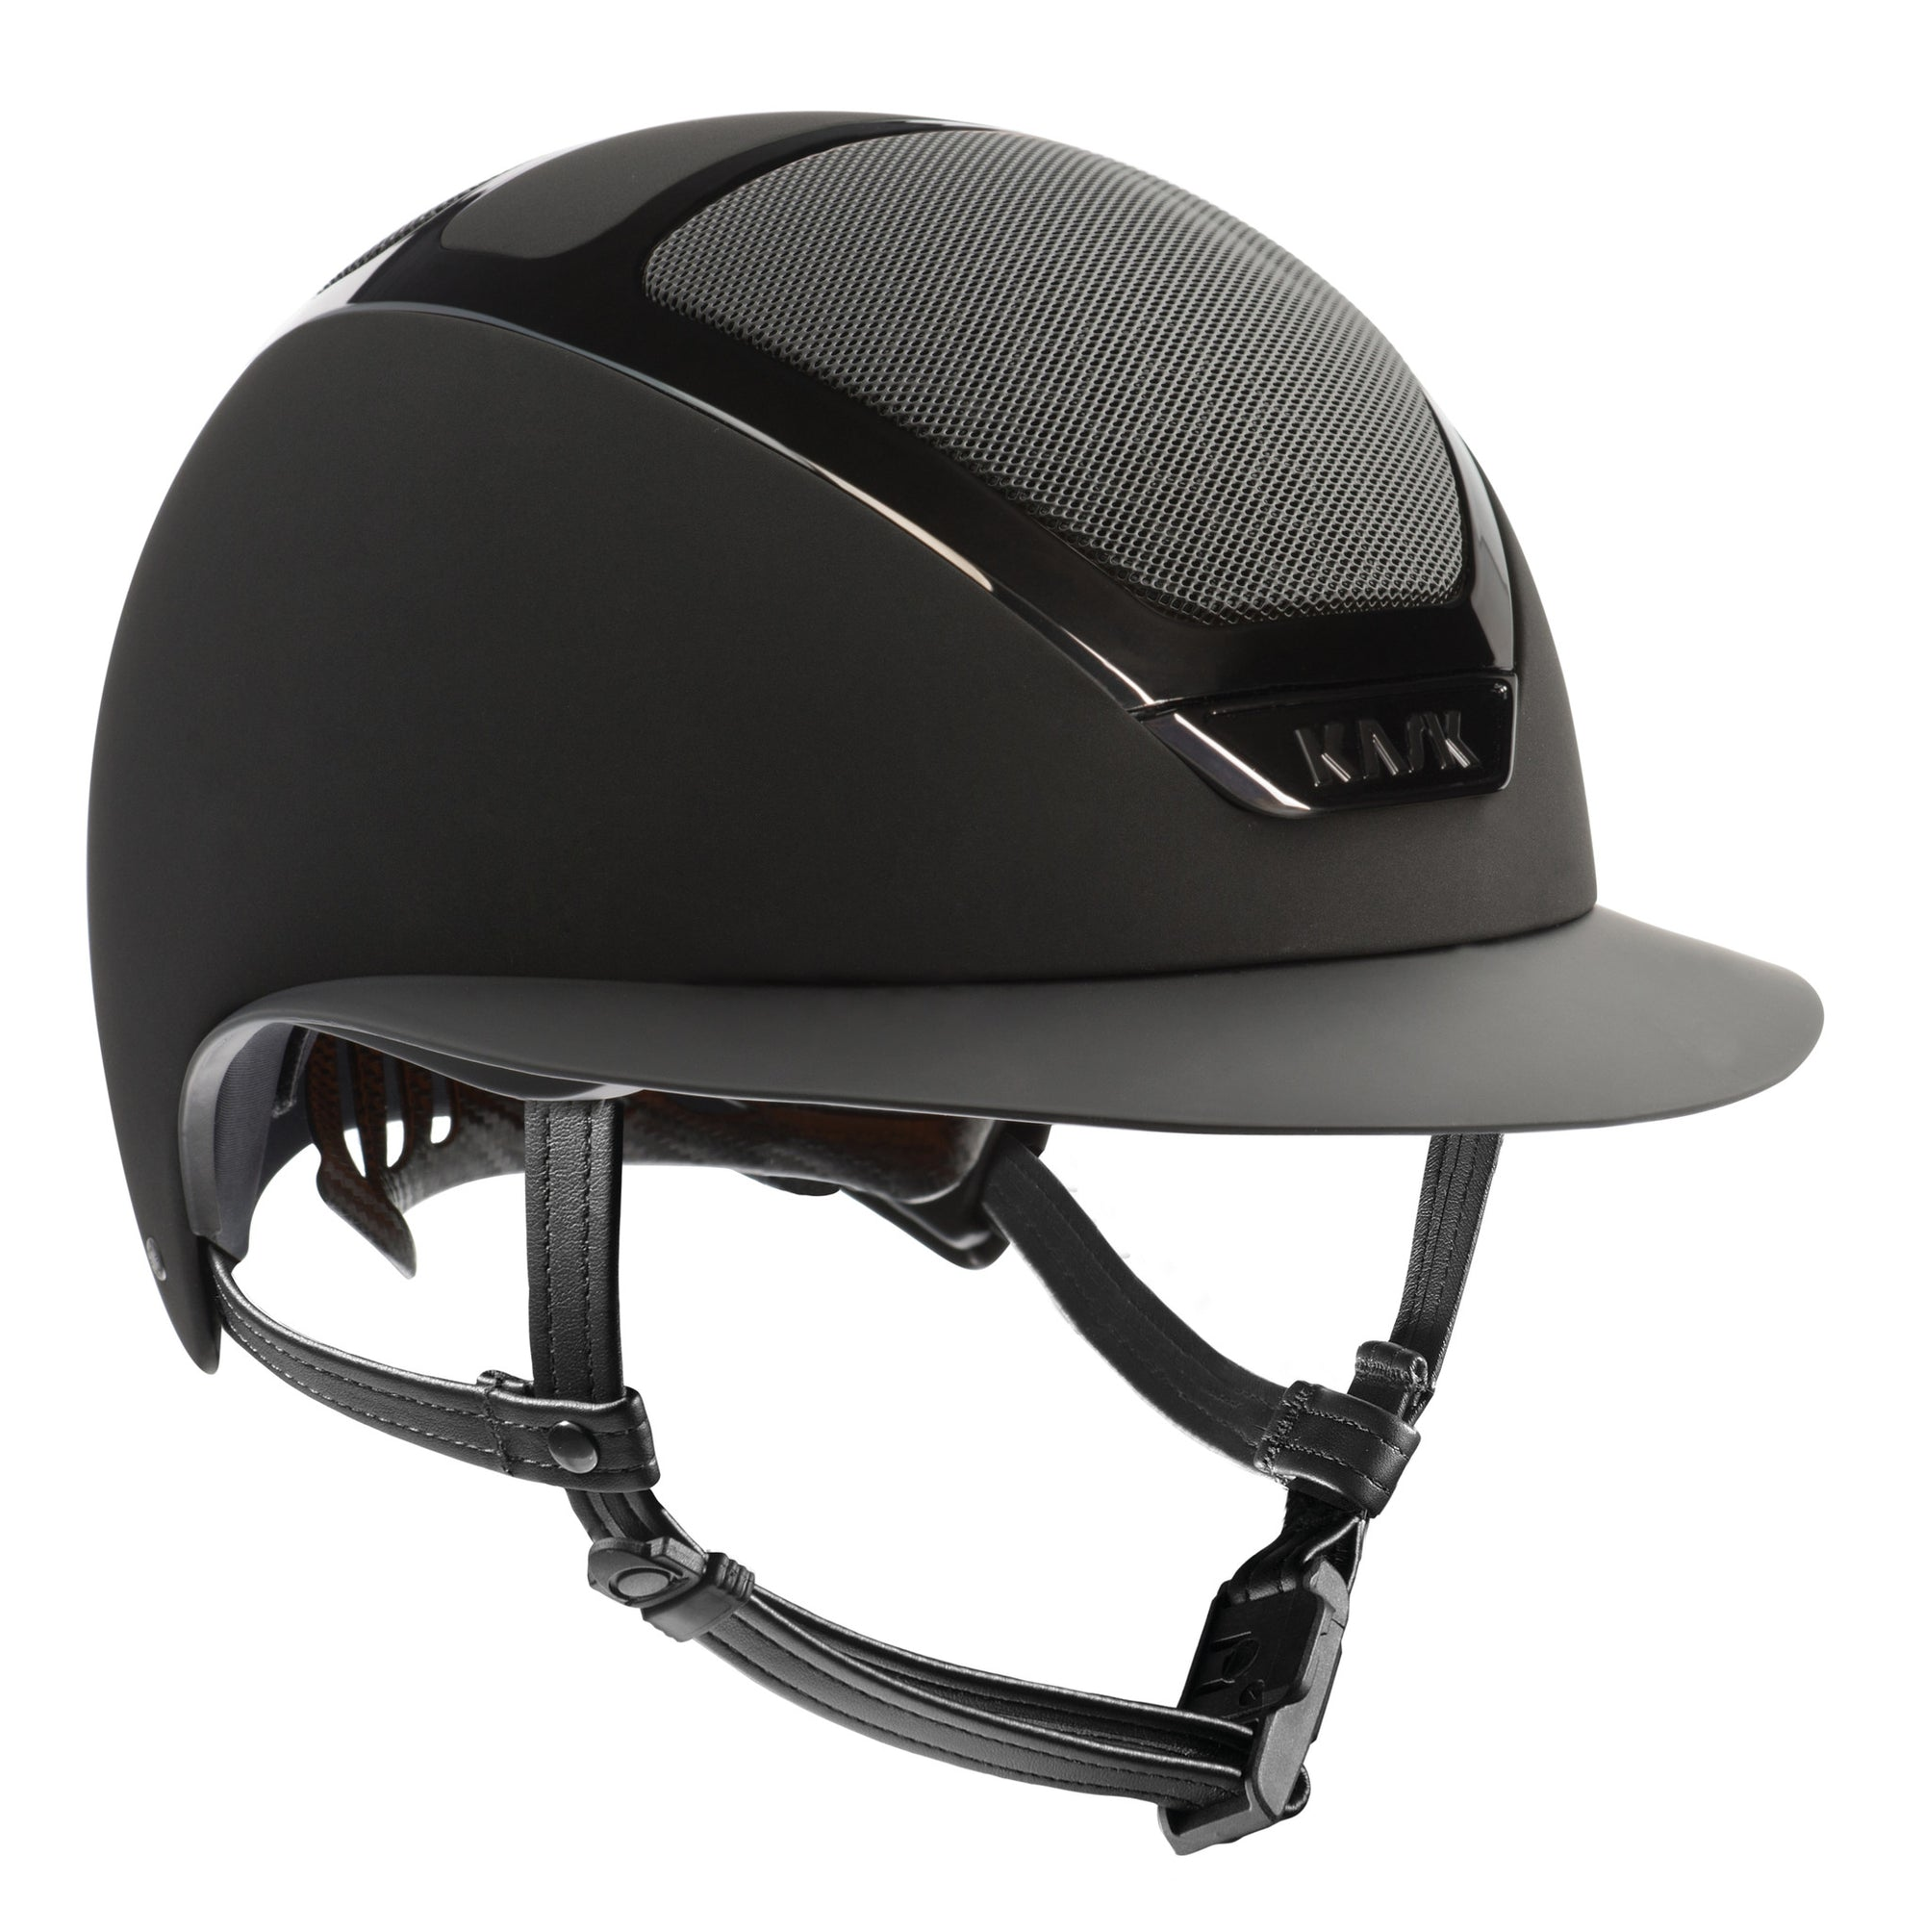 KASK's patented self-adapting adjustment system, introduced for the first time in the equestrian market, allows the helmet to fit the rider's head perfectly and automatically by gently cradling the back of the head. It is highly popular among the girls that tie their hair in pony tails.     The internal padding can be removed easily for washing either by hand or machine (at 30°C). The soft, eco-leather hypoallergenic chin pad helps prevent skin irritations. The fabric is easily washable, water-repellent and